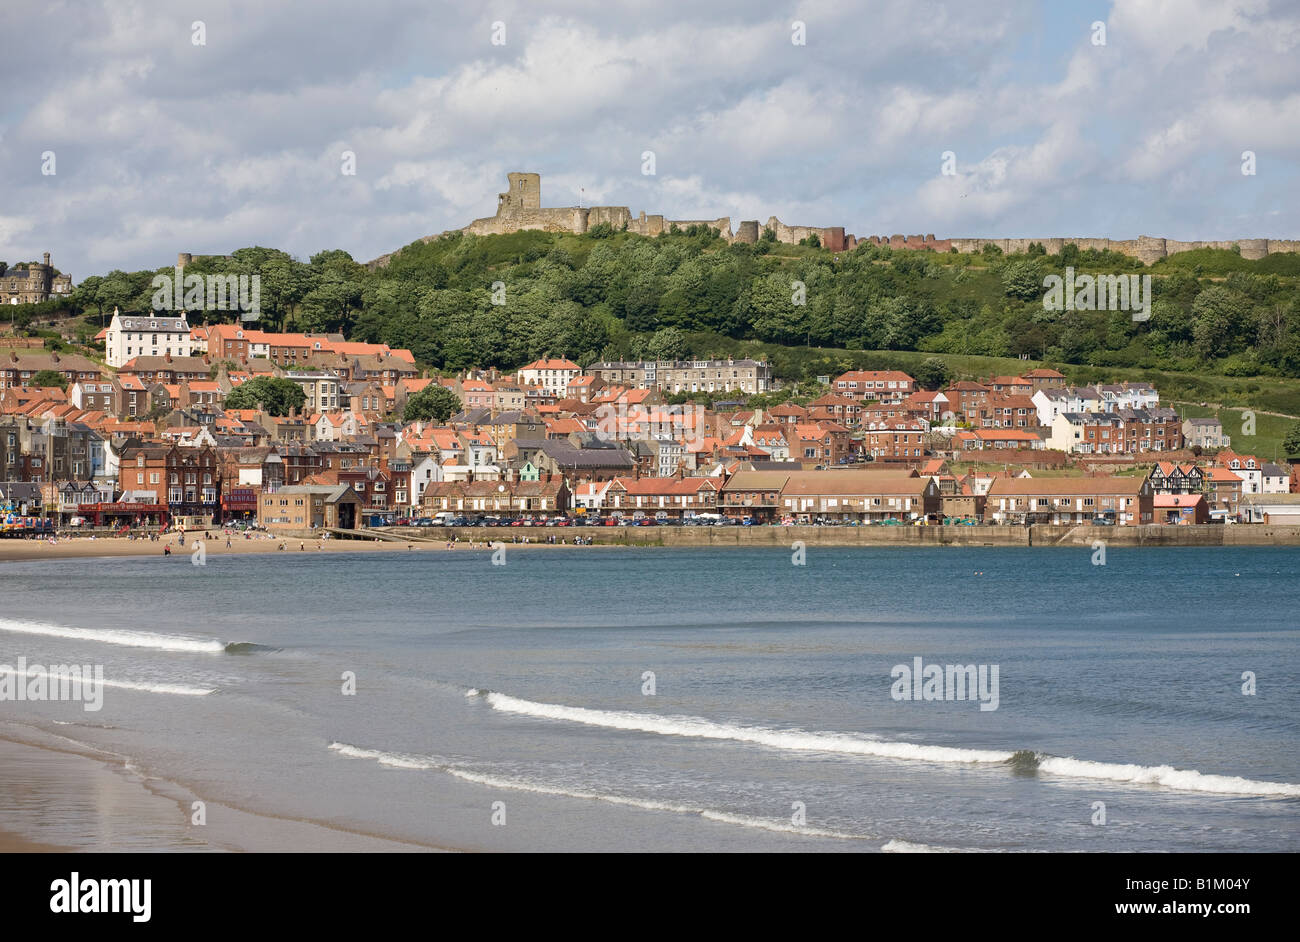 A view of the North Yorkshire sea side resort of Scarborough England UK - Stock Image